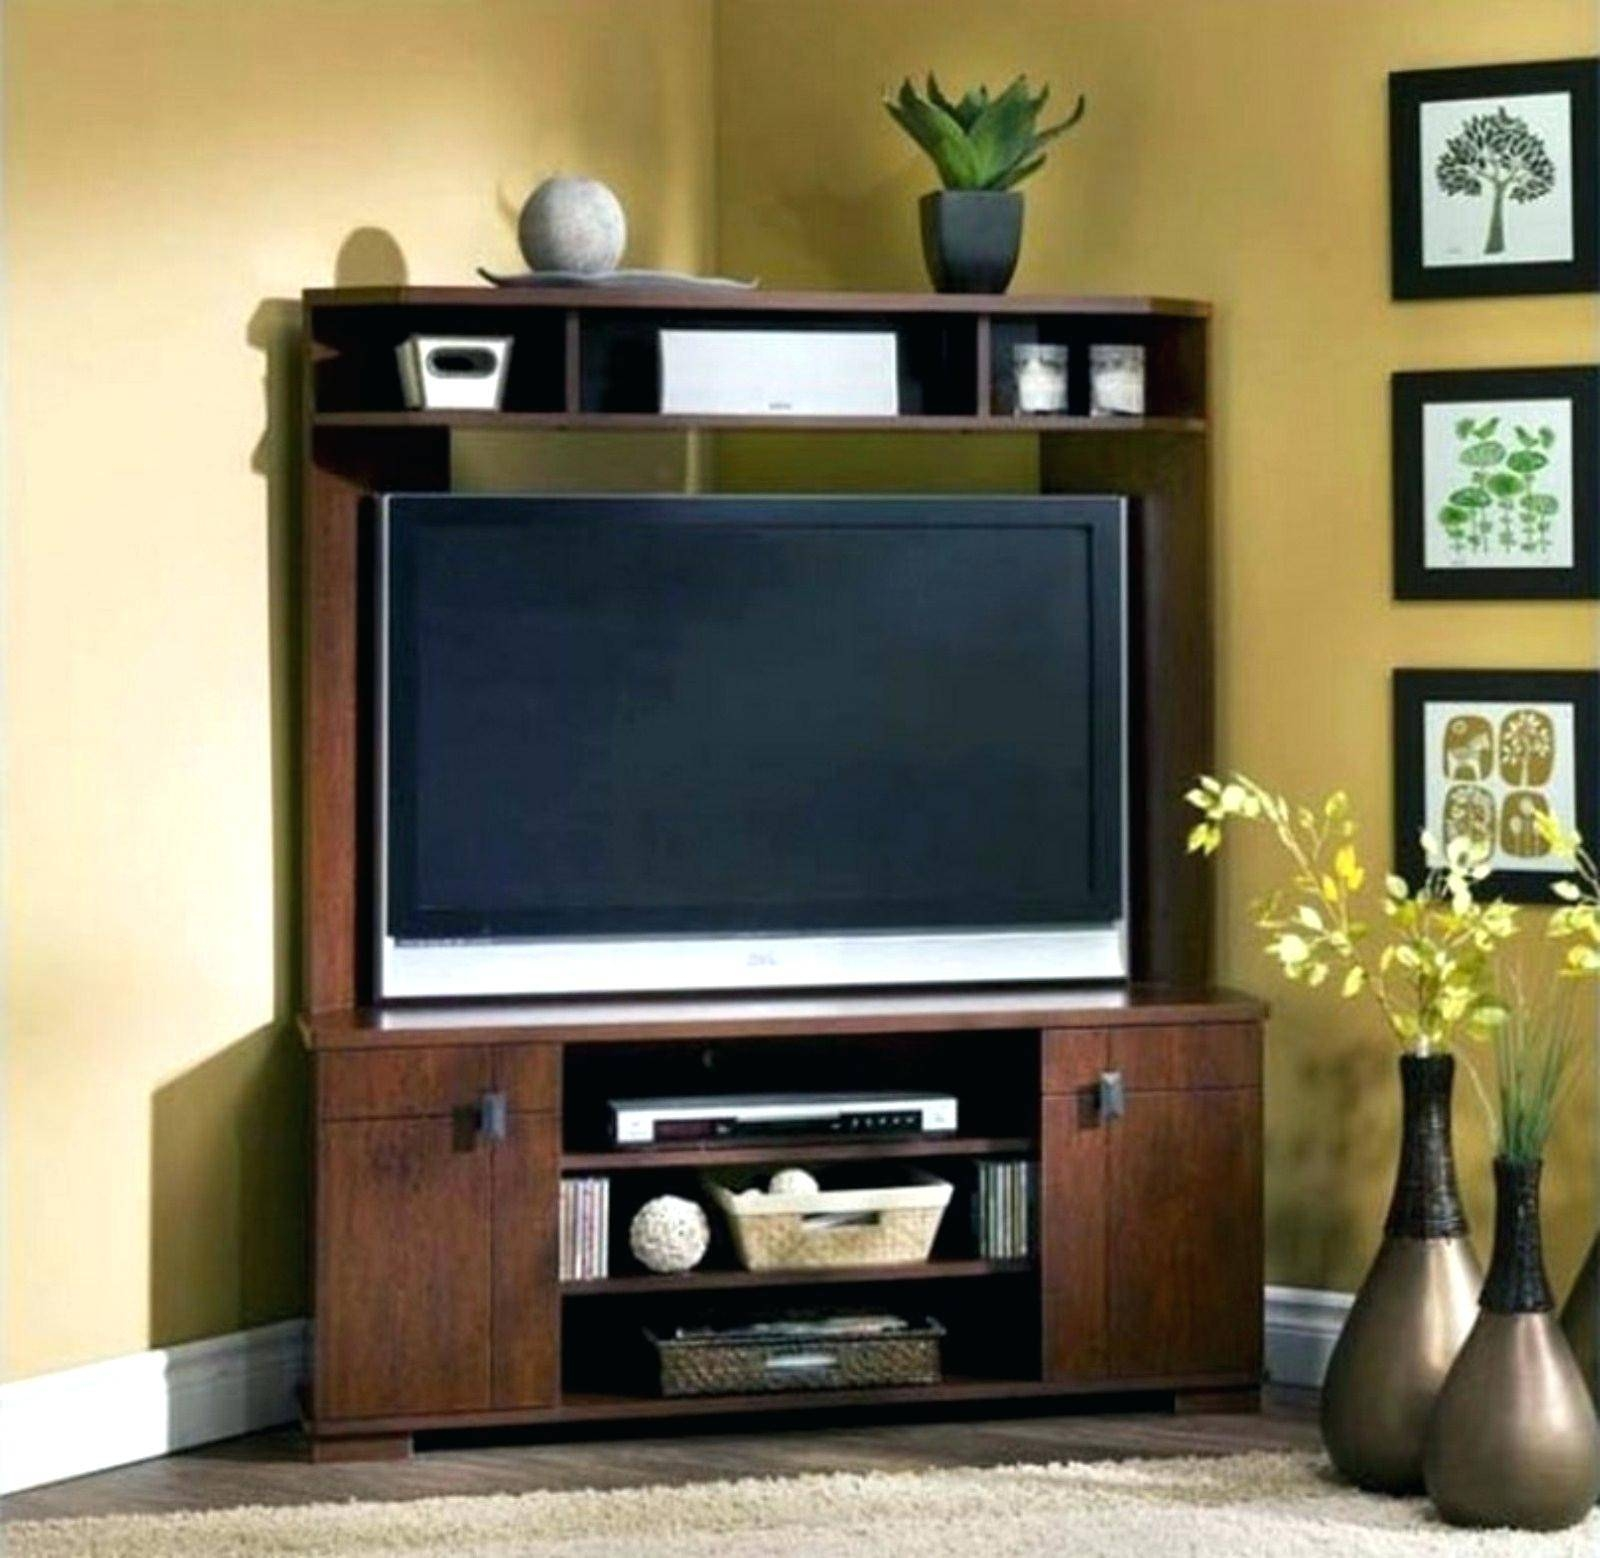 Tv Stand : Corner Tv Console 55 Inch Corner Tv Stand Flat Screen Intended For Corner Tv Stands For 55 Inch Tv (View 12 of 15)